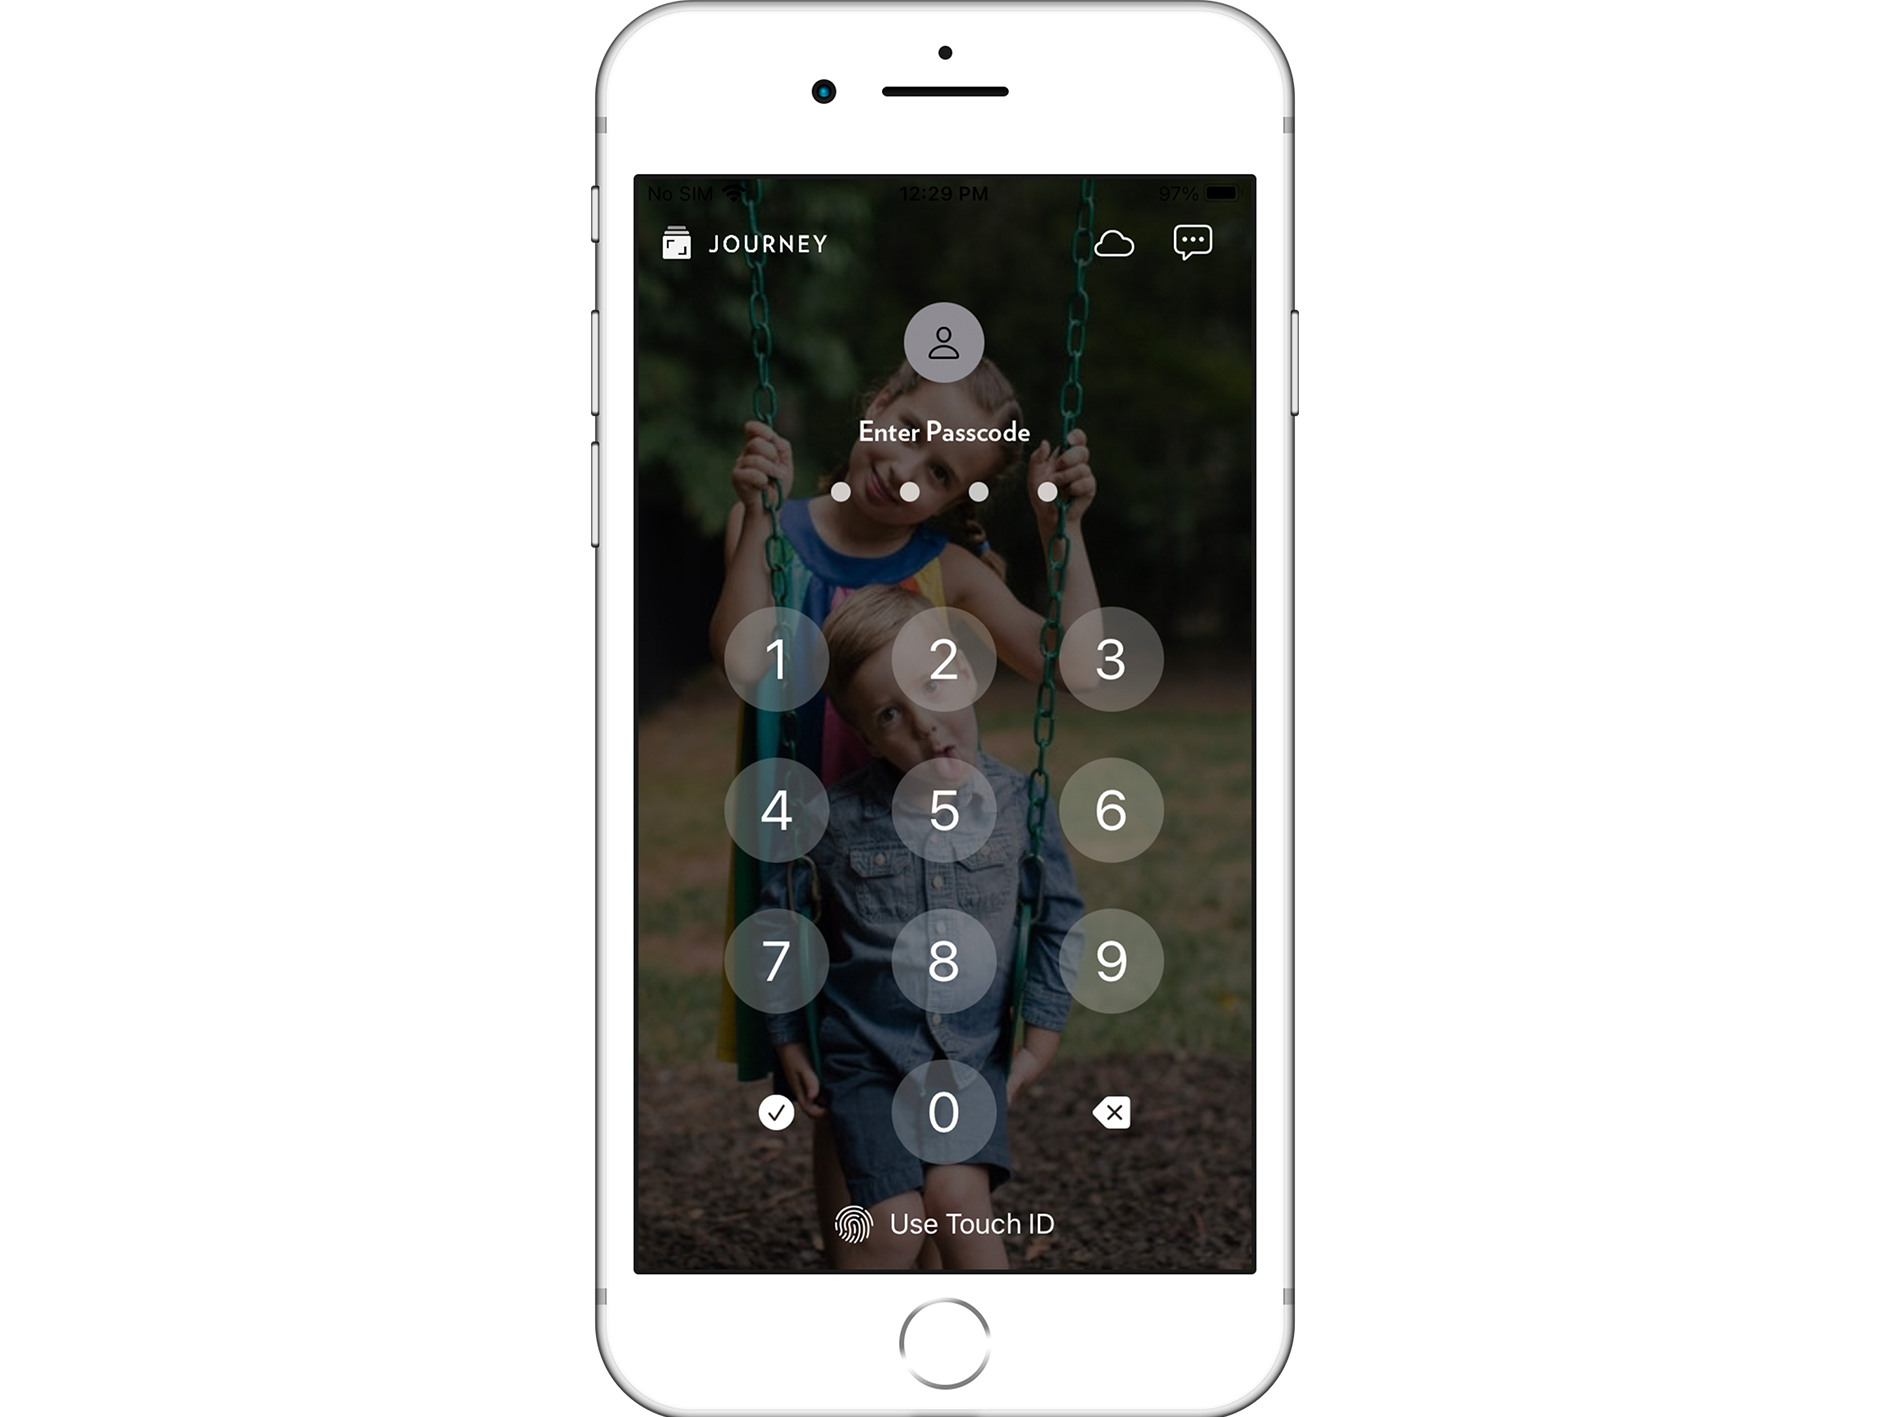 Journey's security and privacy features on Apple iPhone